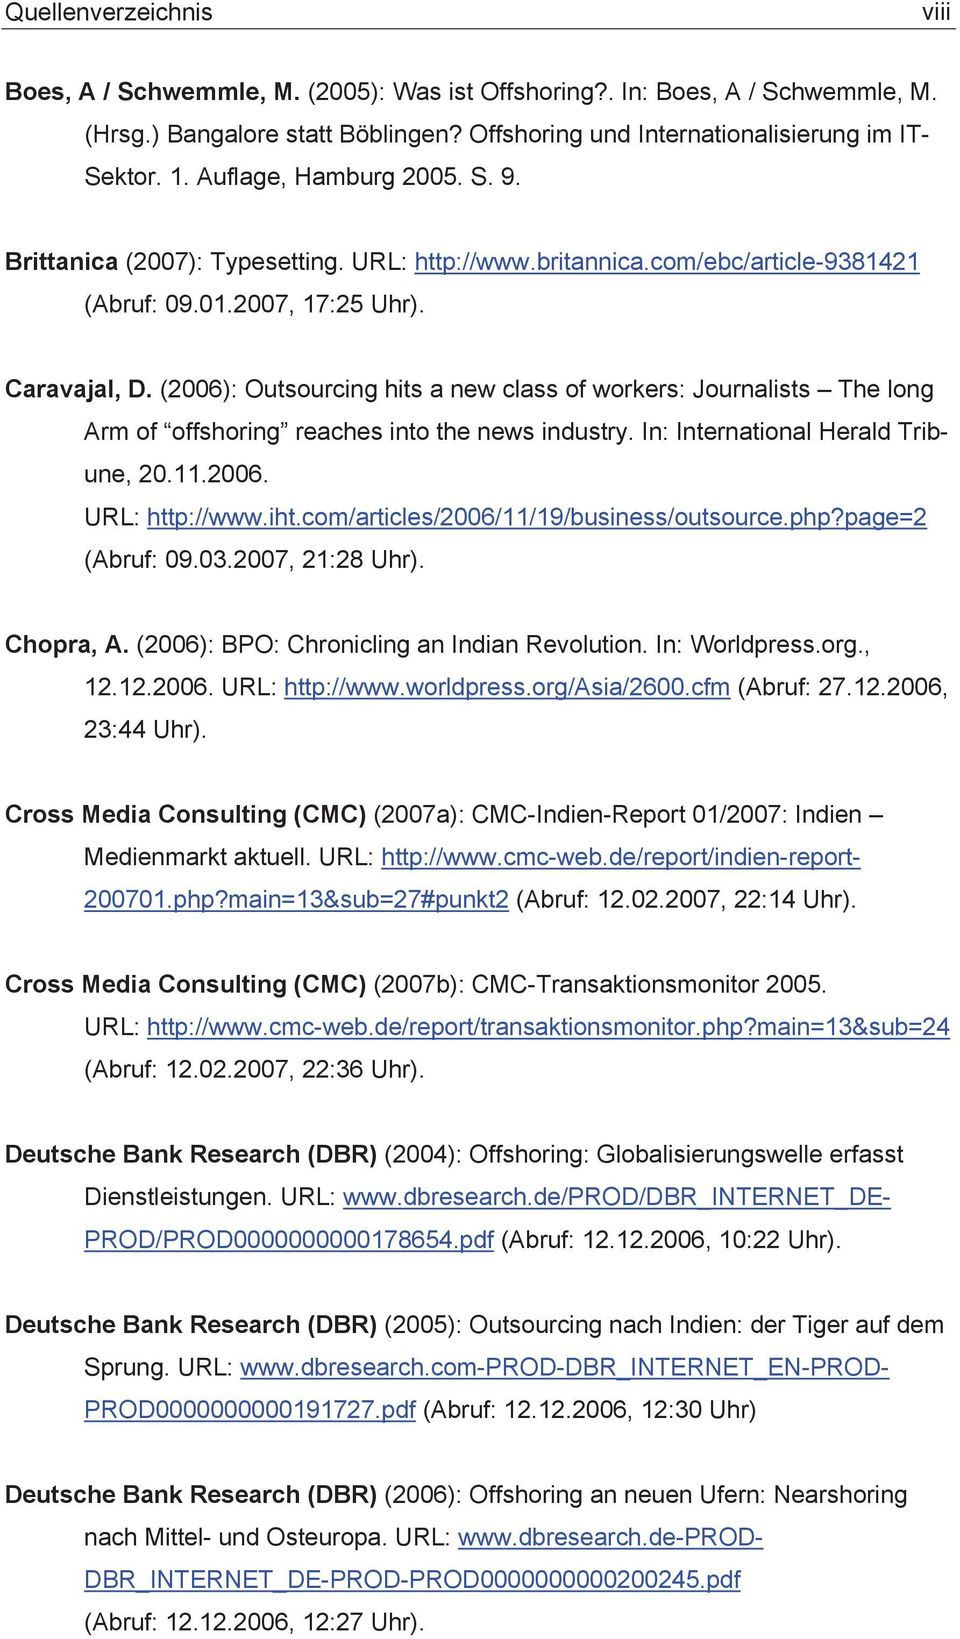 (2006): Outsourcing hits a new class of workers: Journalists The long Arm of offshoring reaches into the news industry. In: International Herald Tribune, 20.11.2006. URL: http://www.iht.